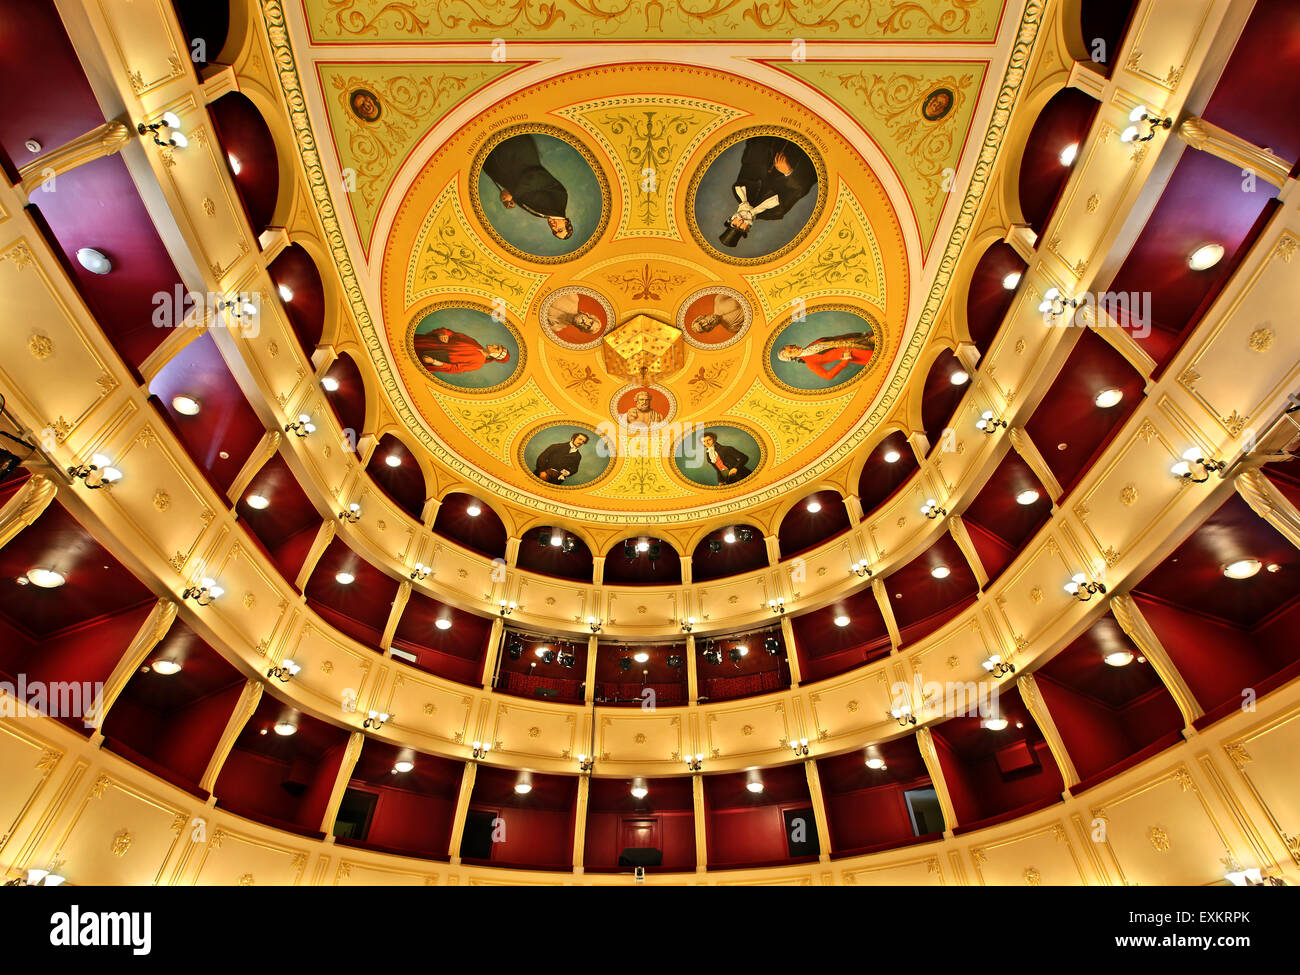 The Apollo Municipal Theater of Syros, Ermoupolis ('Hermoupolis') town, Syros island, Cyclades, Aegean sea, - Stock Image